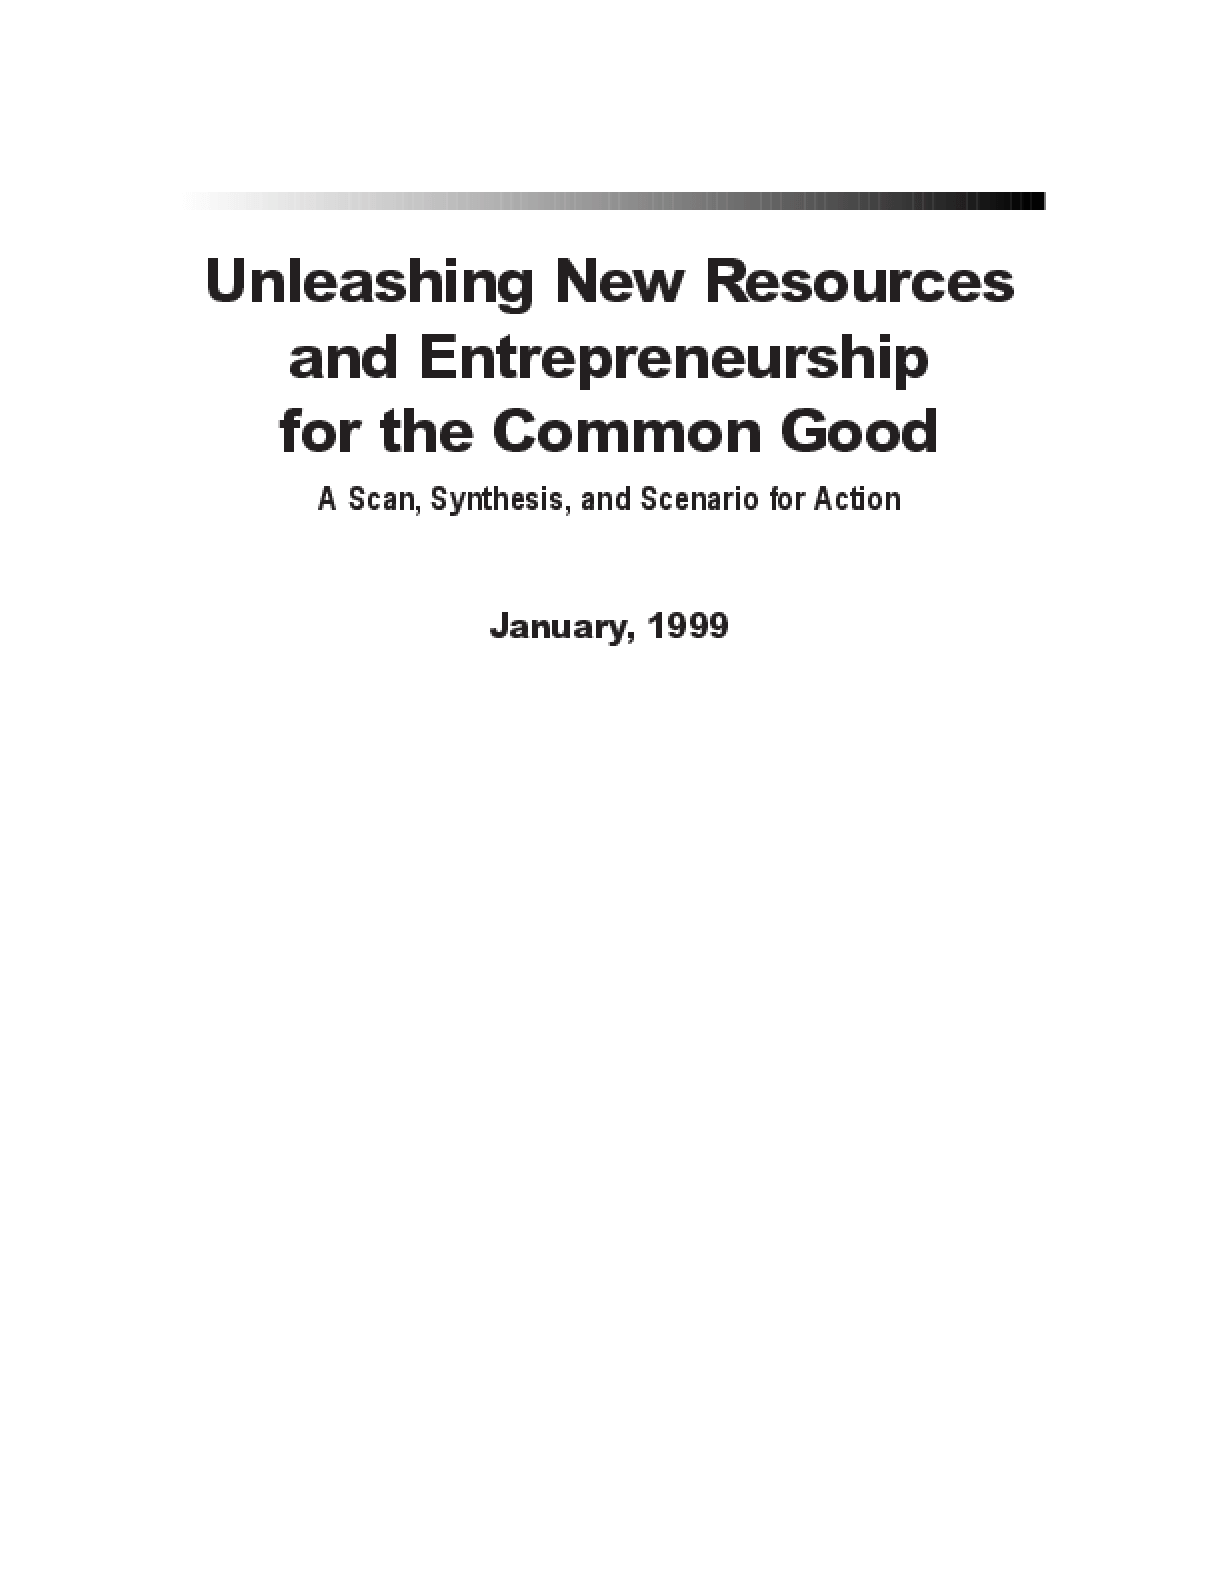 Unleashing New Resources and Entrepreneurship for the Common Good: A Scan, Synthesis, and Scenario for Action